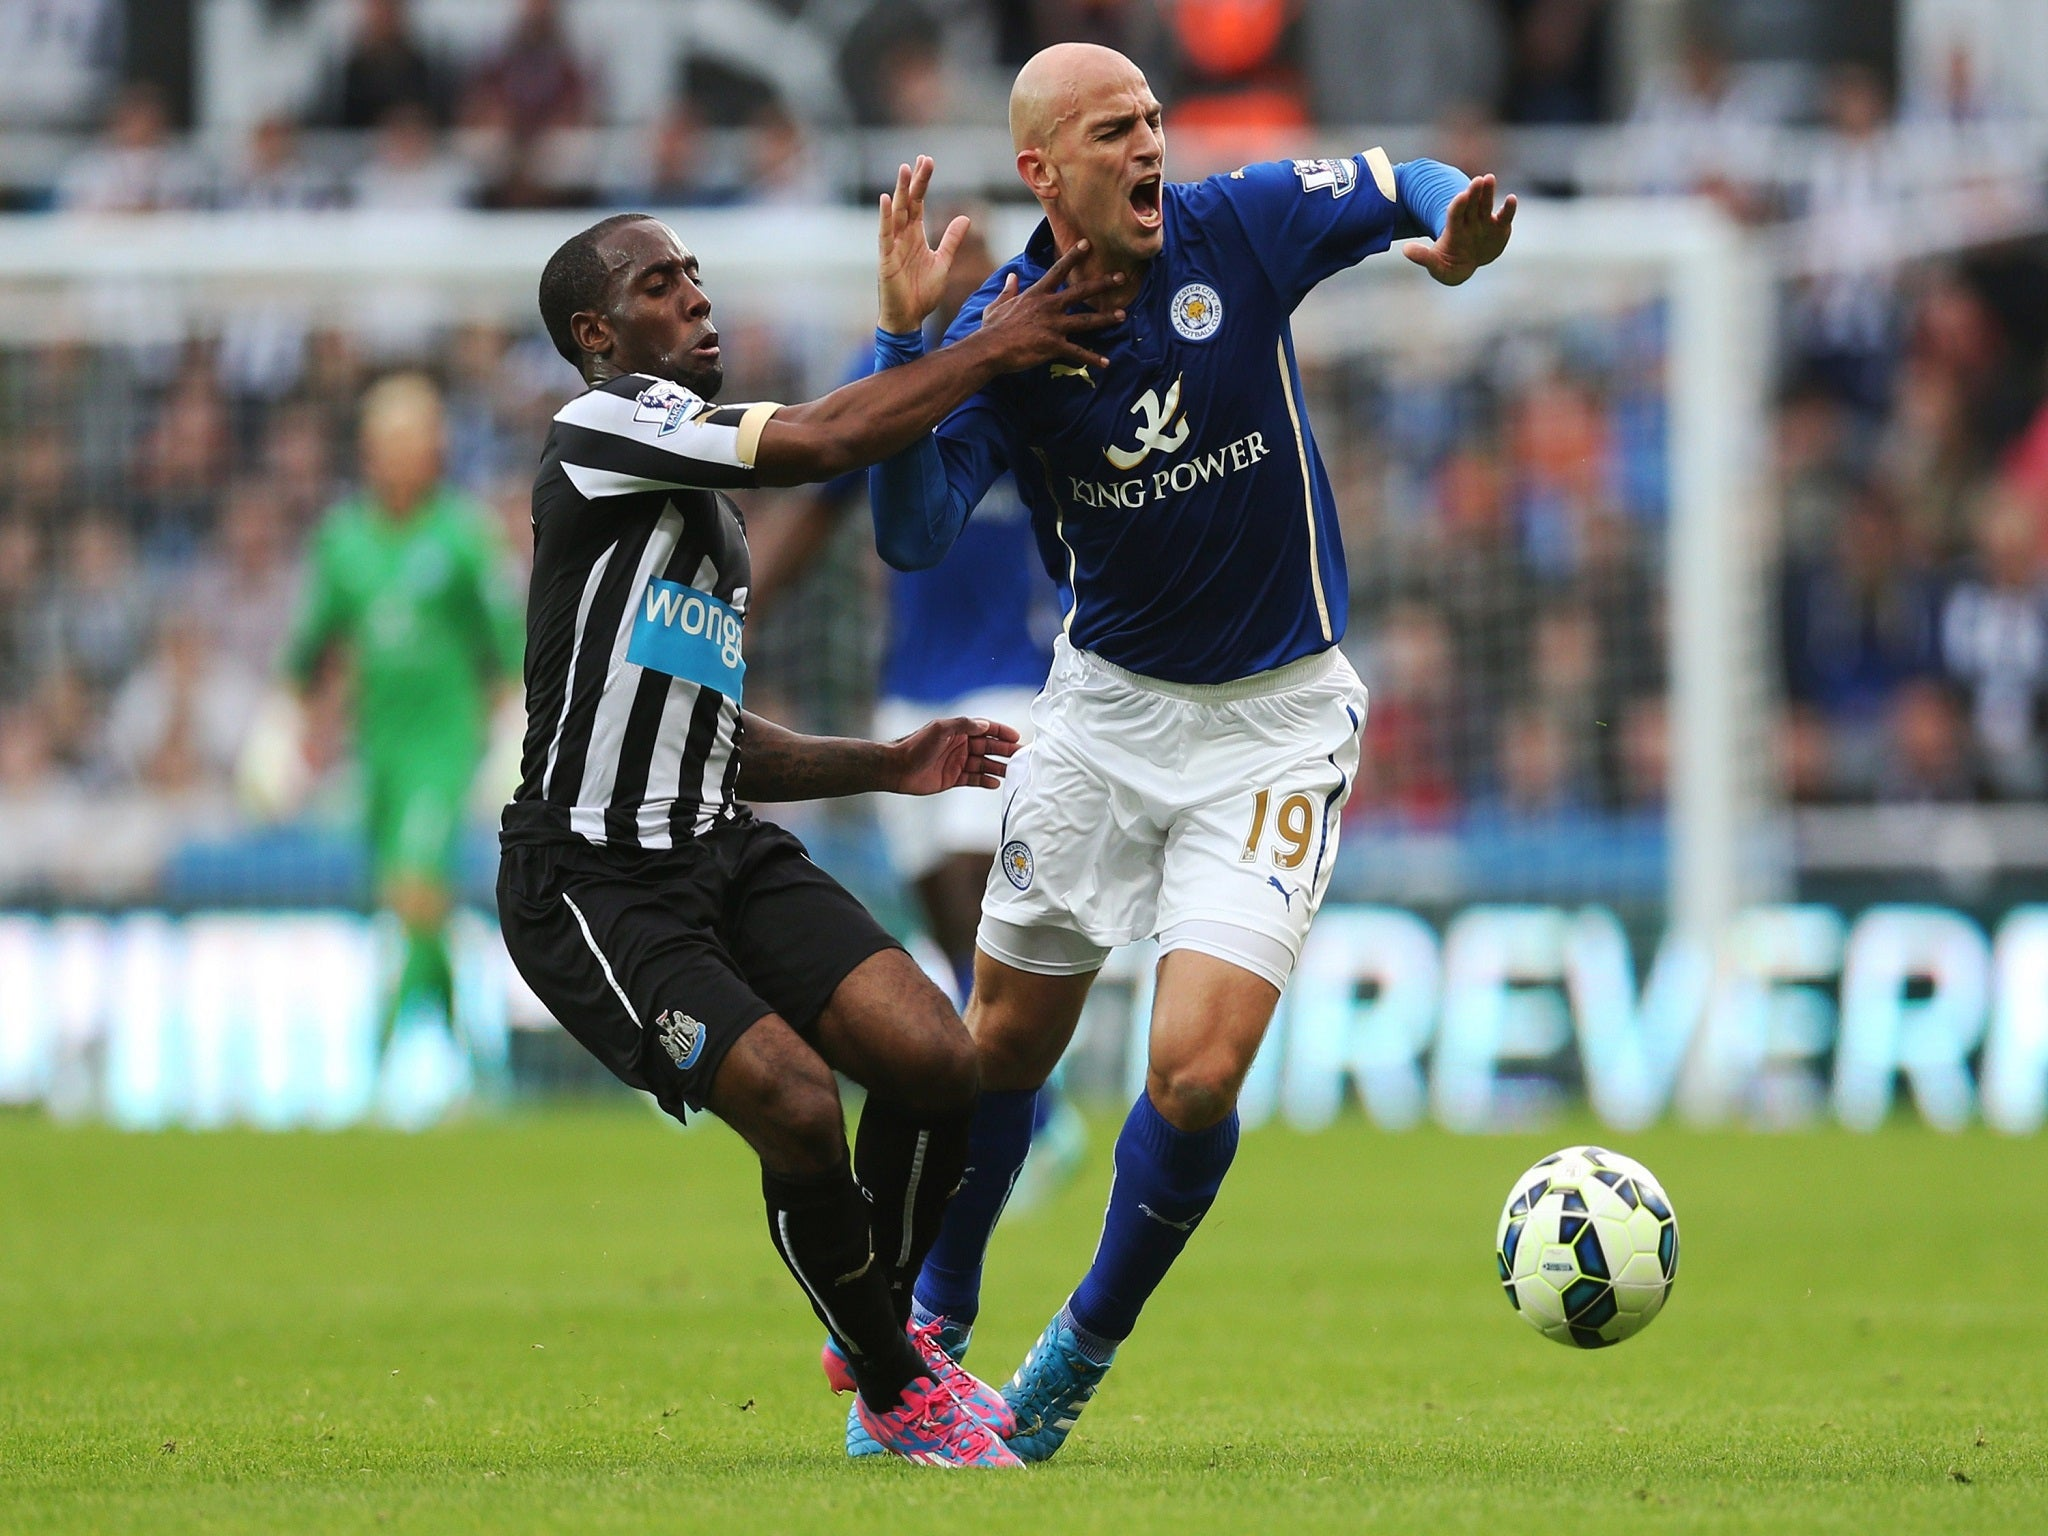 PearsonEsteban Better' 'even Leicester Get Nigel Can Cambiasso At yNnwm80Ov